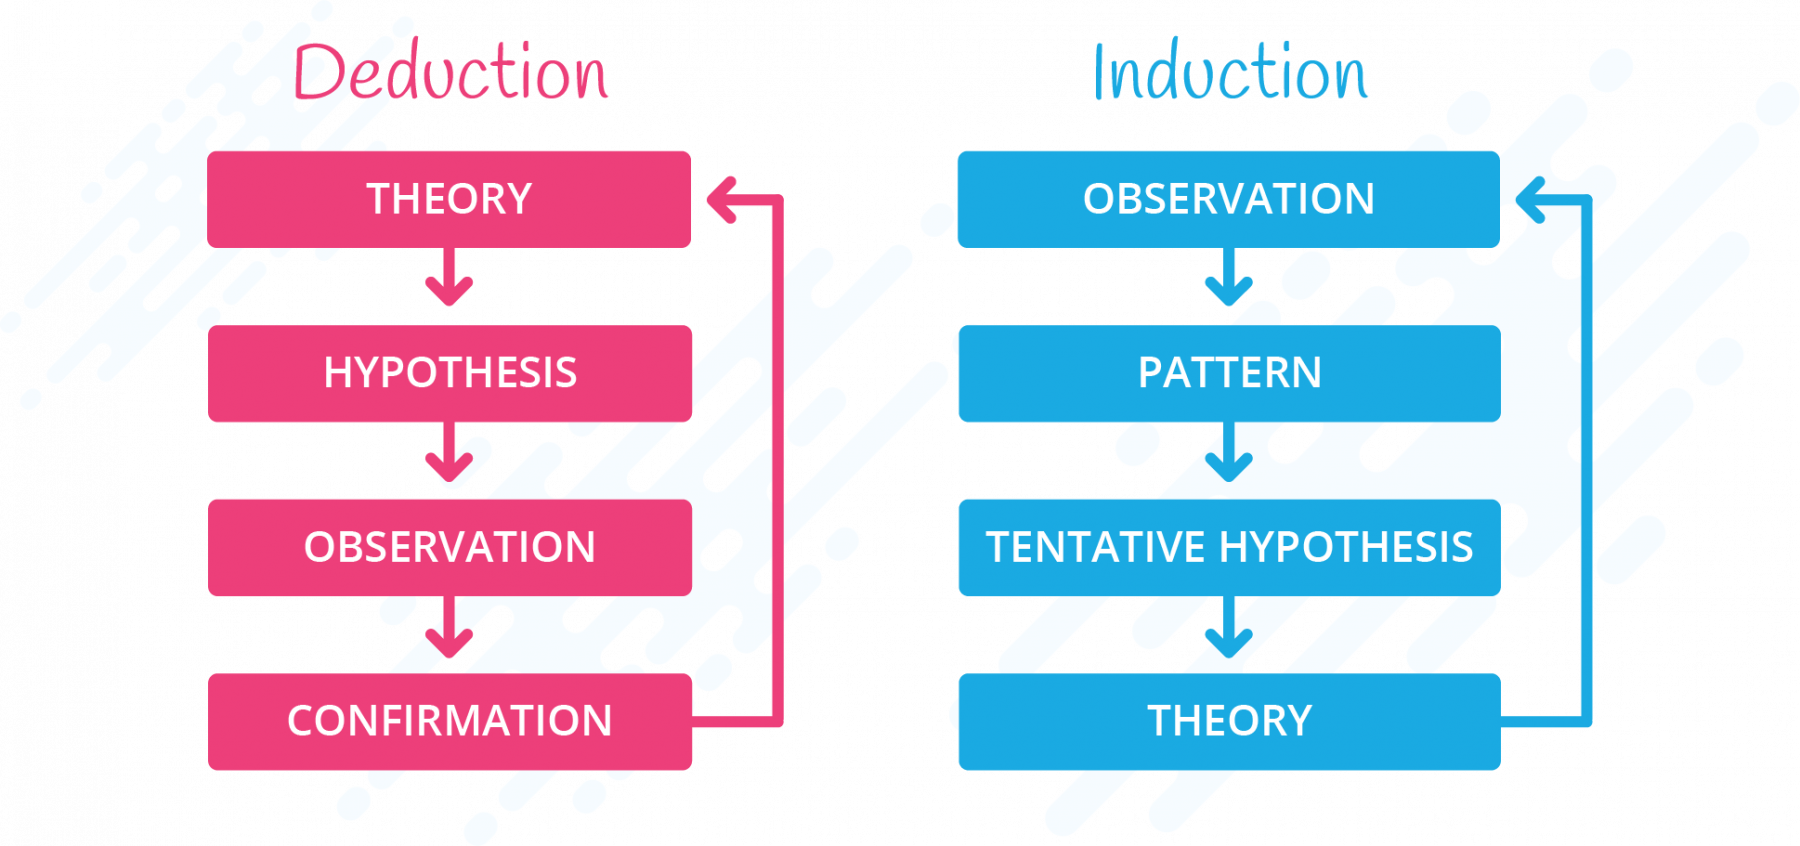 induction vs deduction